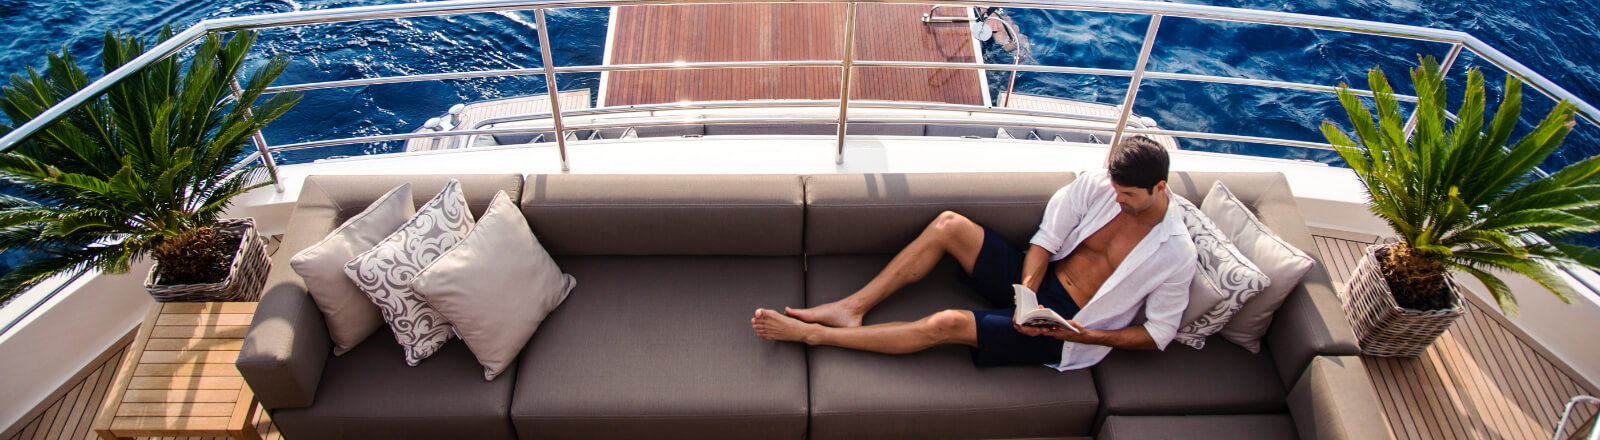 Man relaxing on sofa on the back of a yacht reading a book